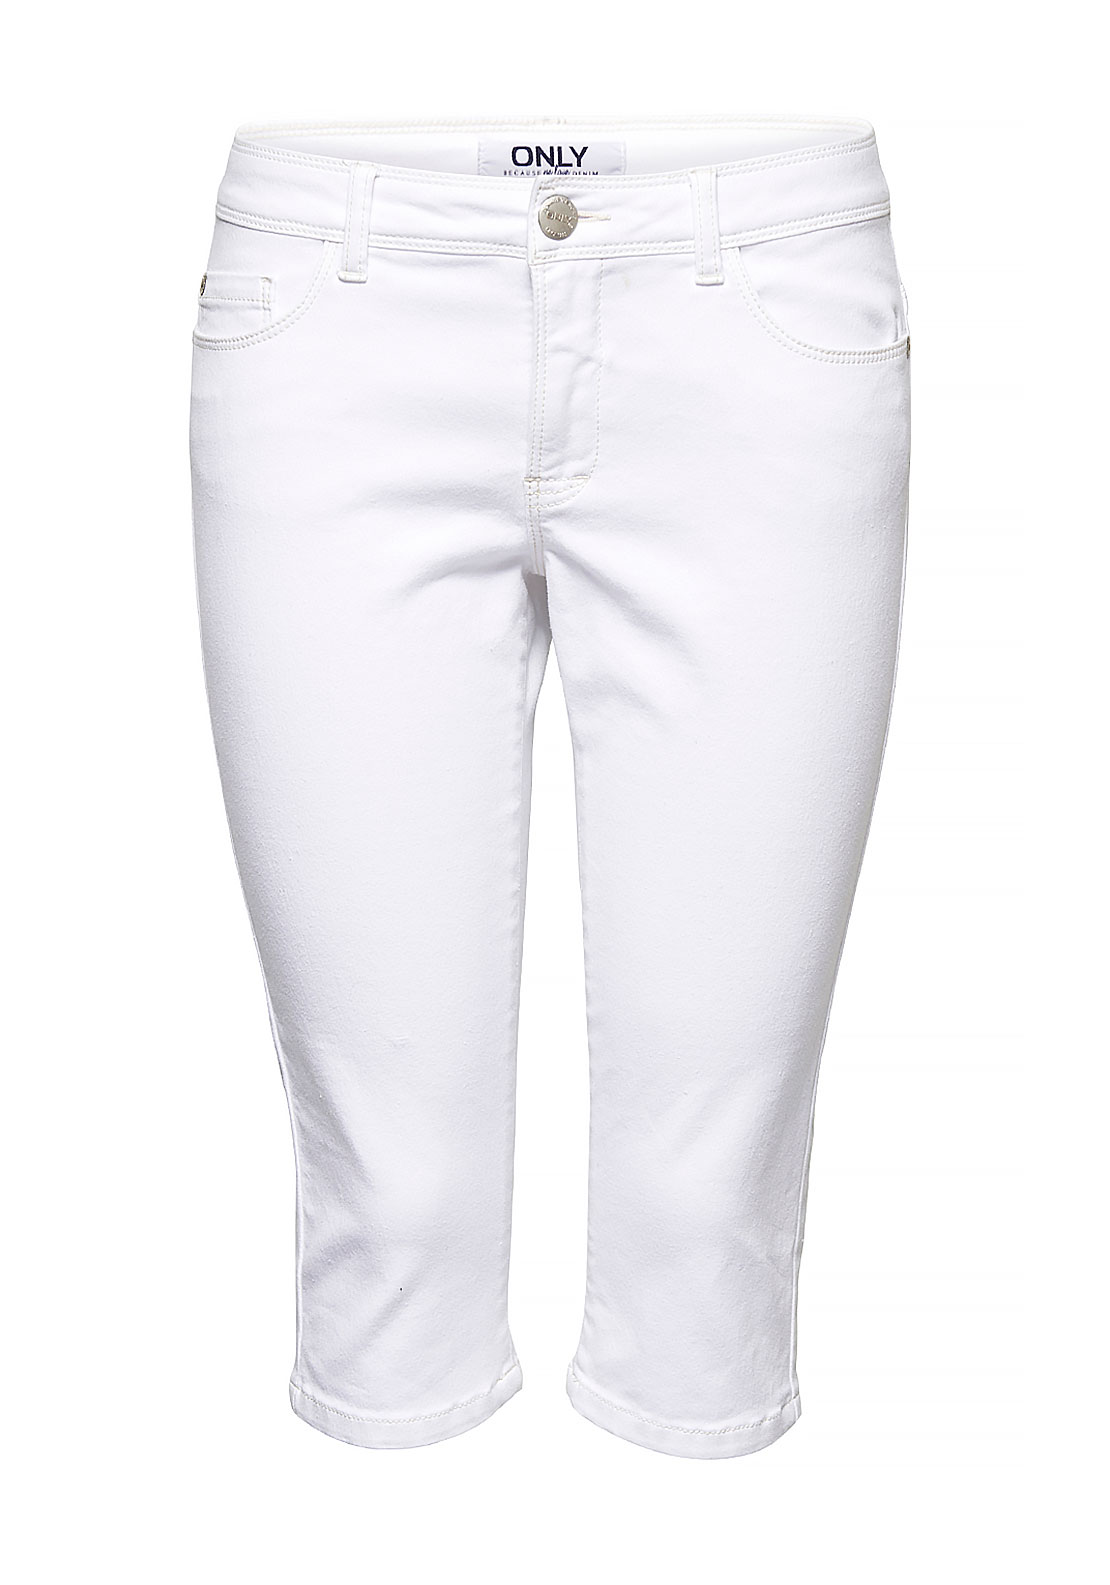 Only Ultimate Soft Regular Cropped Skinny Jeans, White